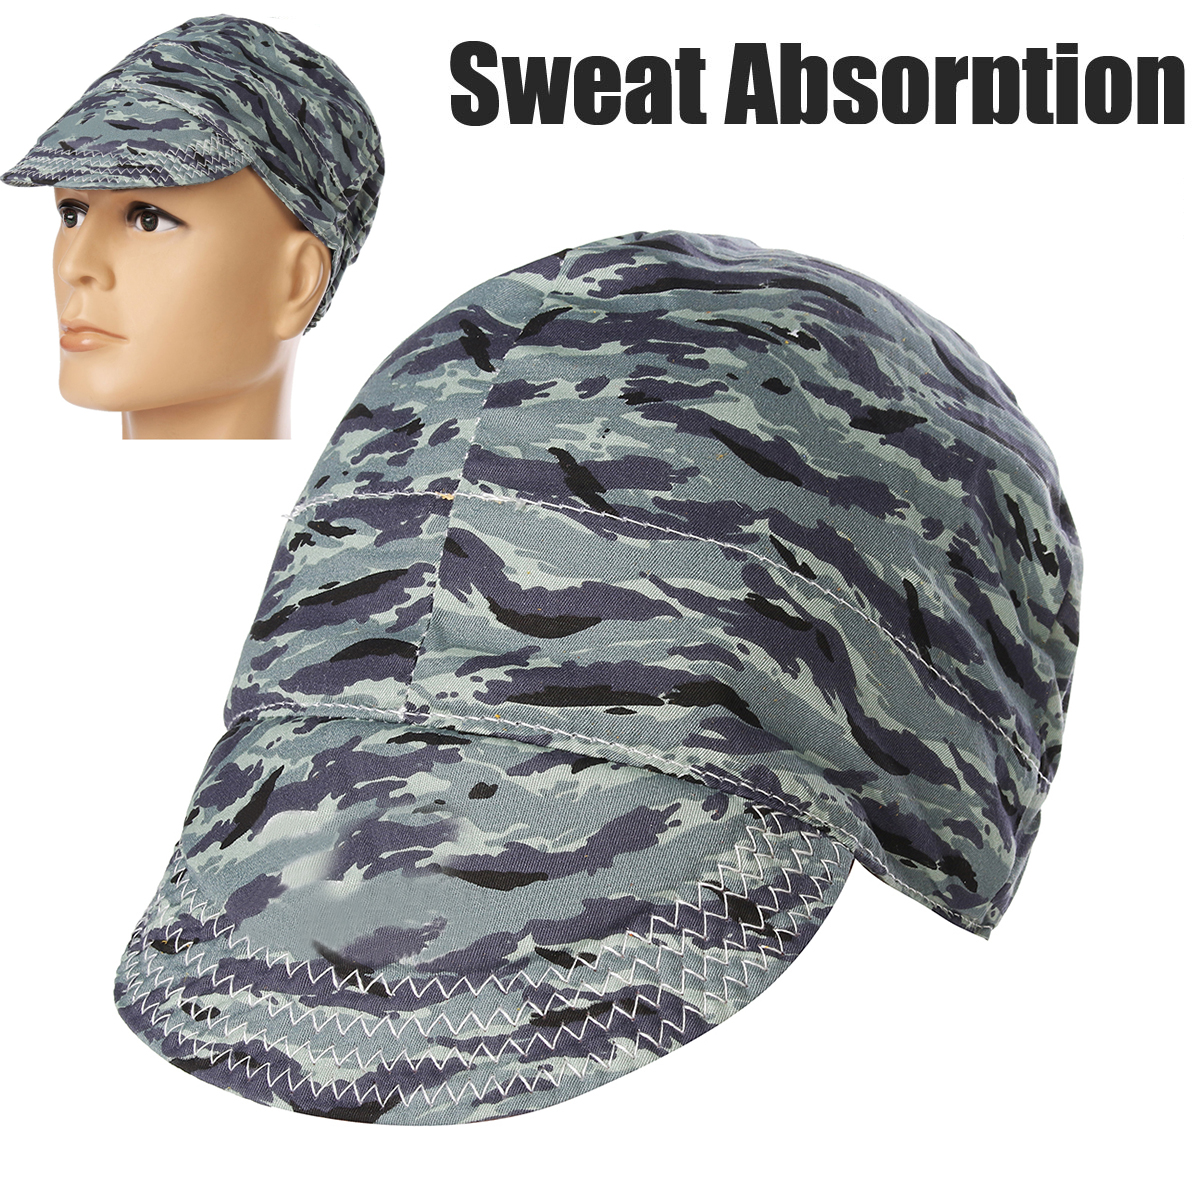 Sweat Absorption Welding Cap Hat Flame Retardant Cotton Application to Welding Protection Workplace Safety Welding Helmets